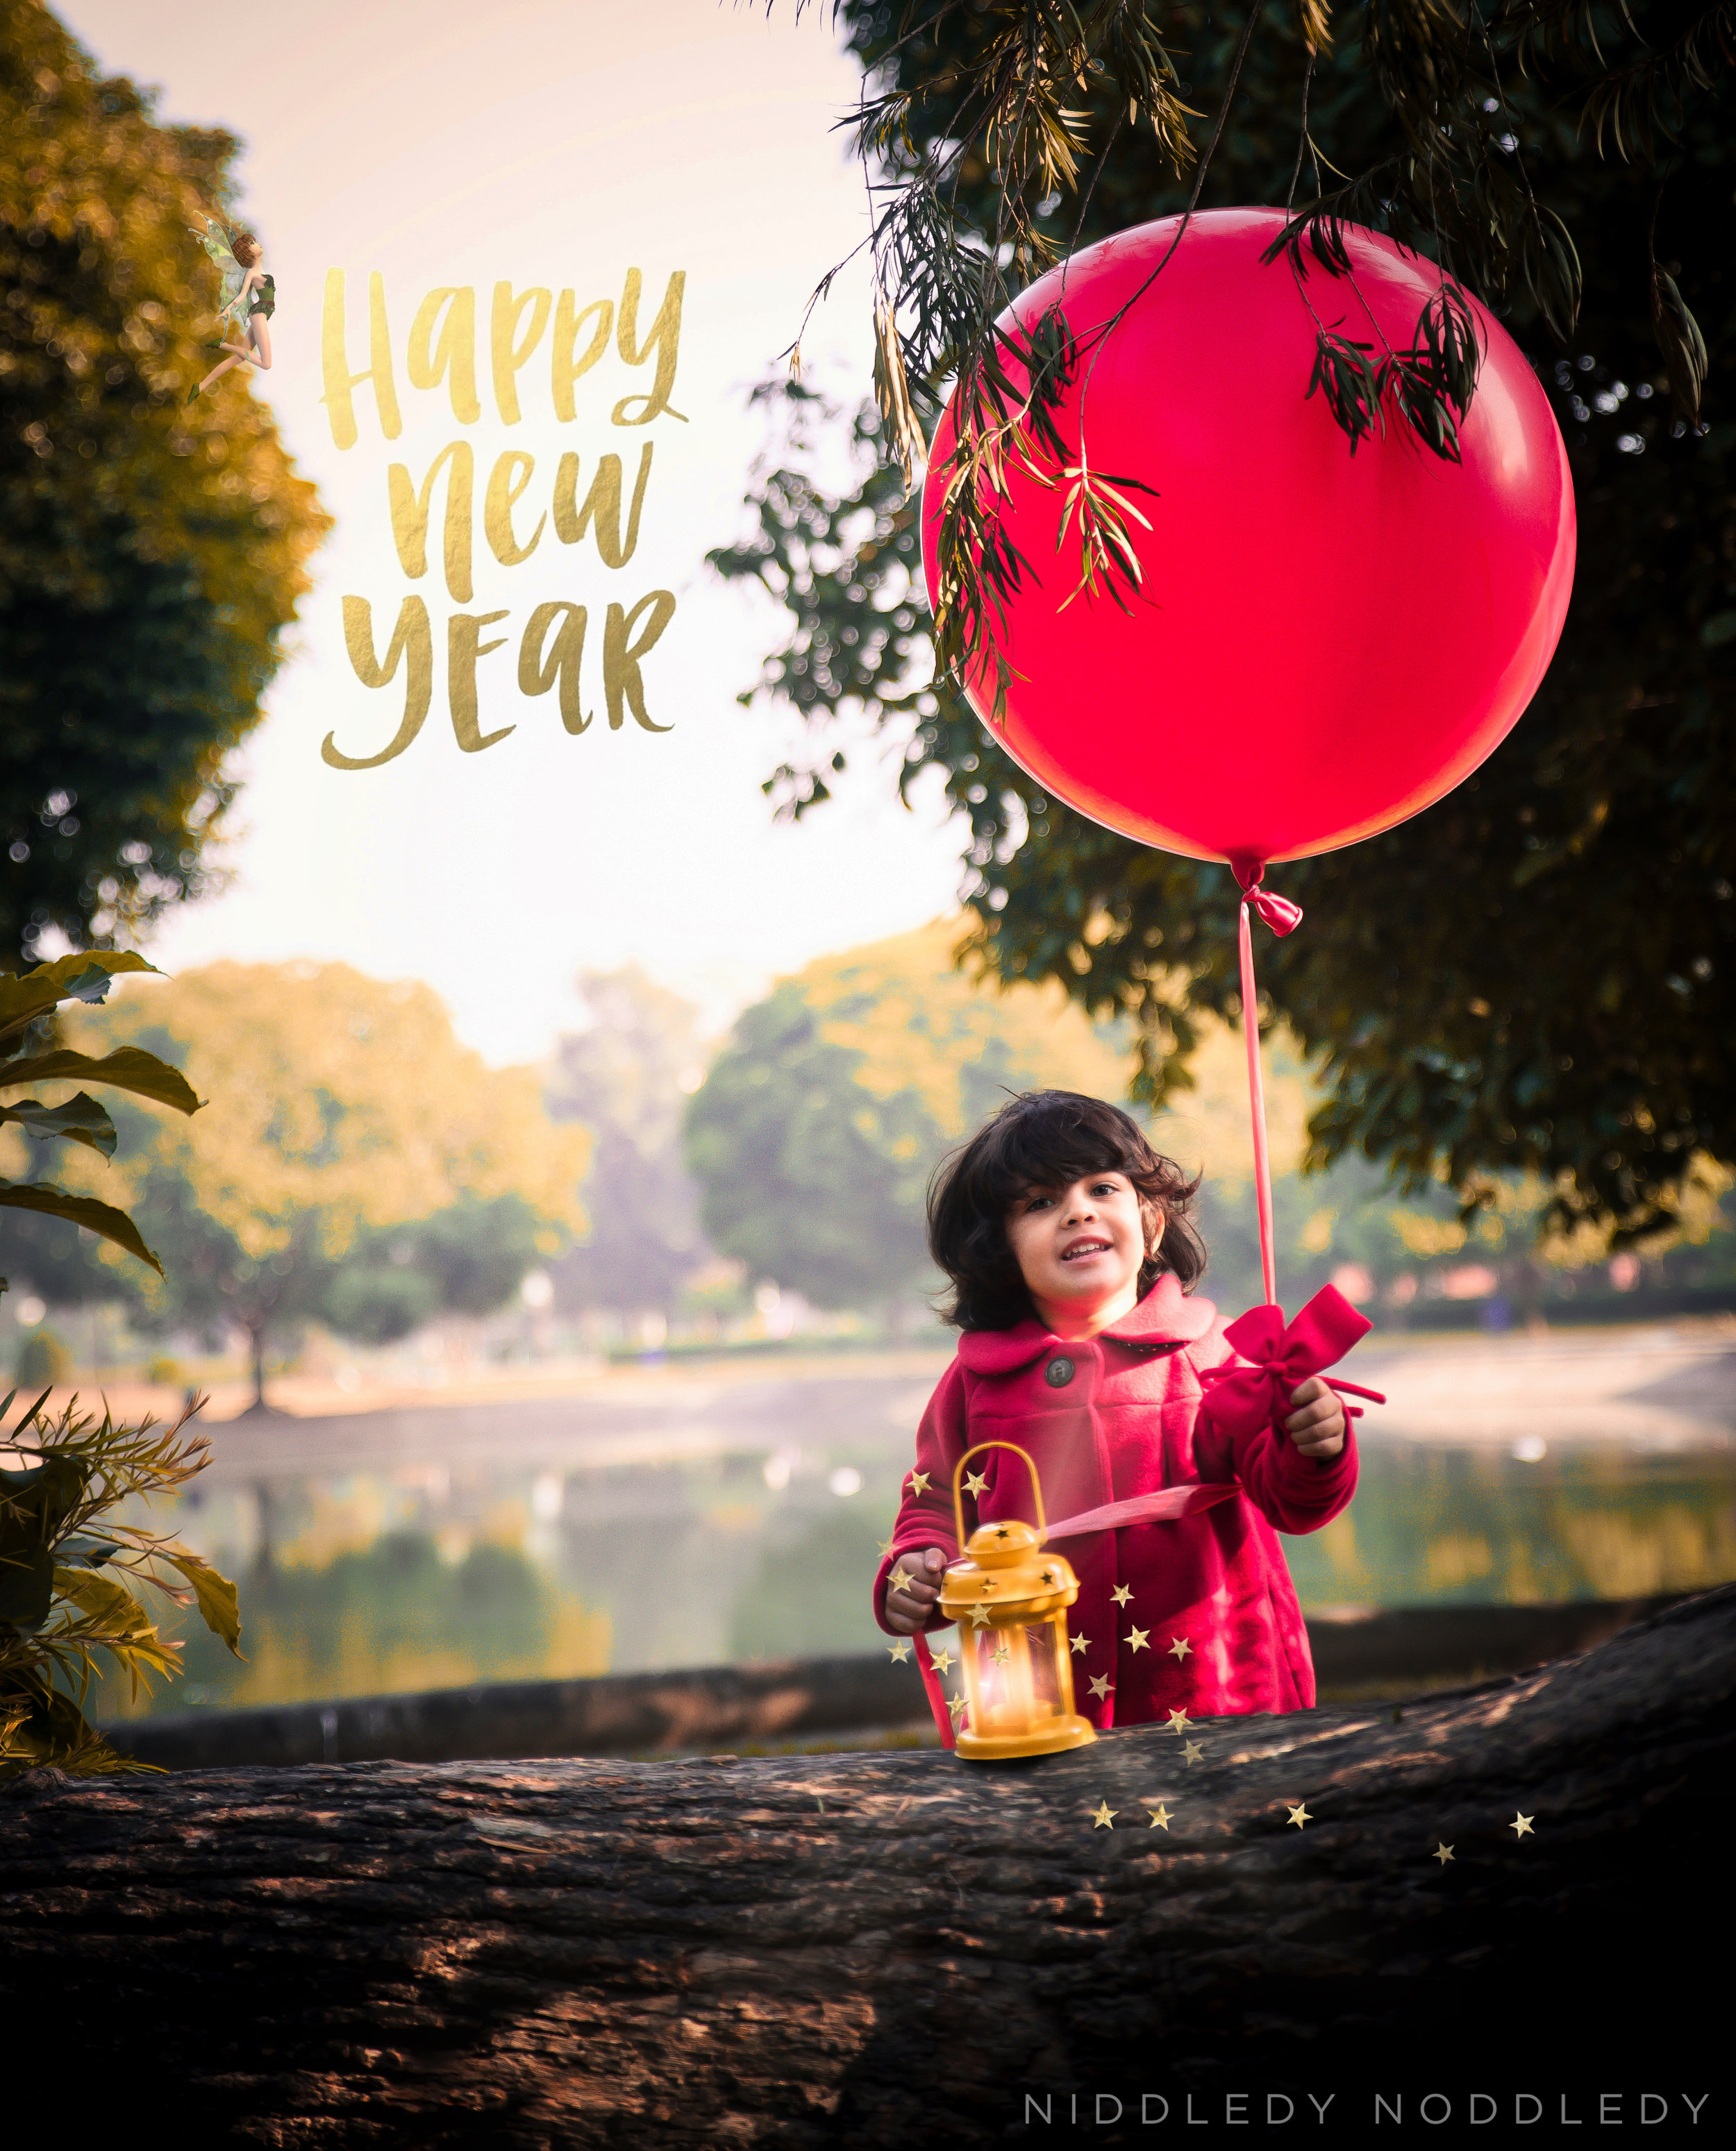 Arya New Year 2018 Photoshoot ❤ NiddledyNoddledy.com ~ Bumps to Babies Photography, Kolkata - 05.jpg